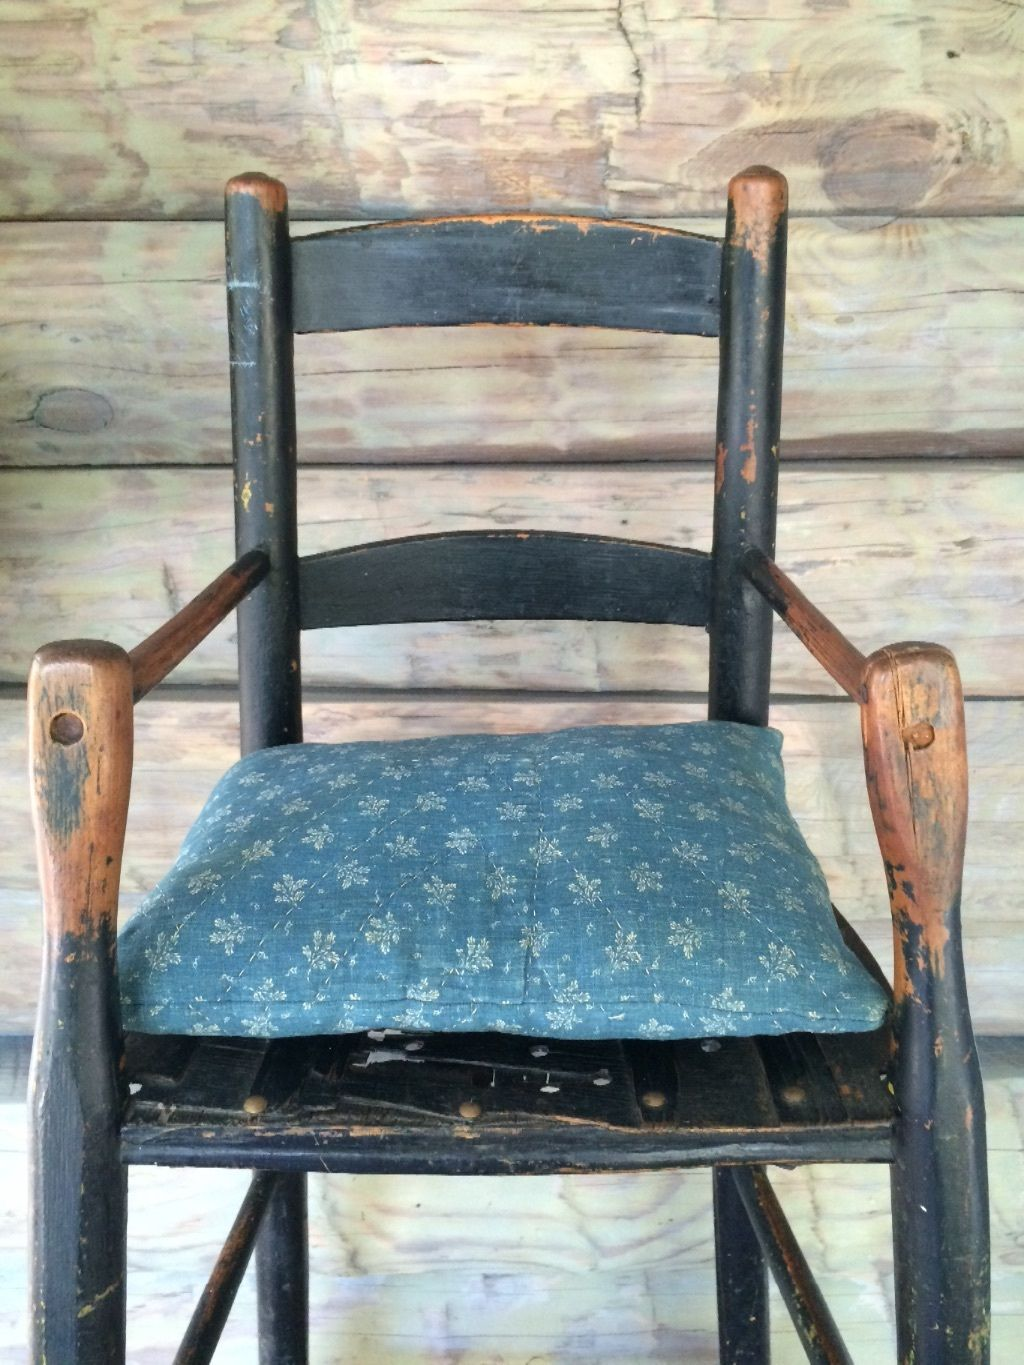 Aafa Early Primitive Antique Youth Child's High Chair With Early Black  Paint | eBay - Aafa Early Primitive Antique Youth Child's High Chair With Early